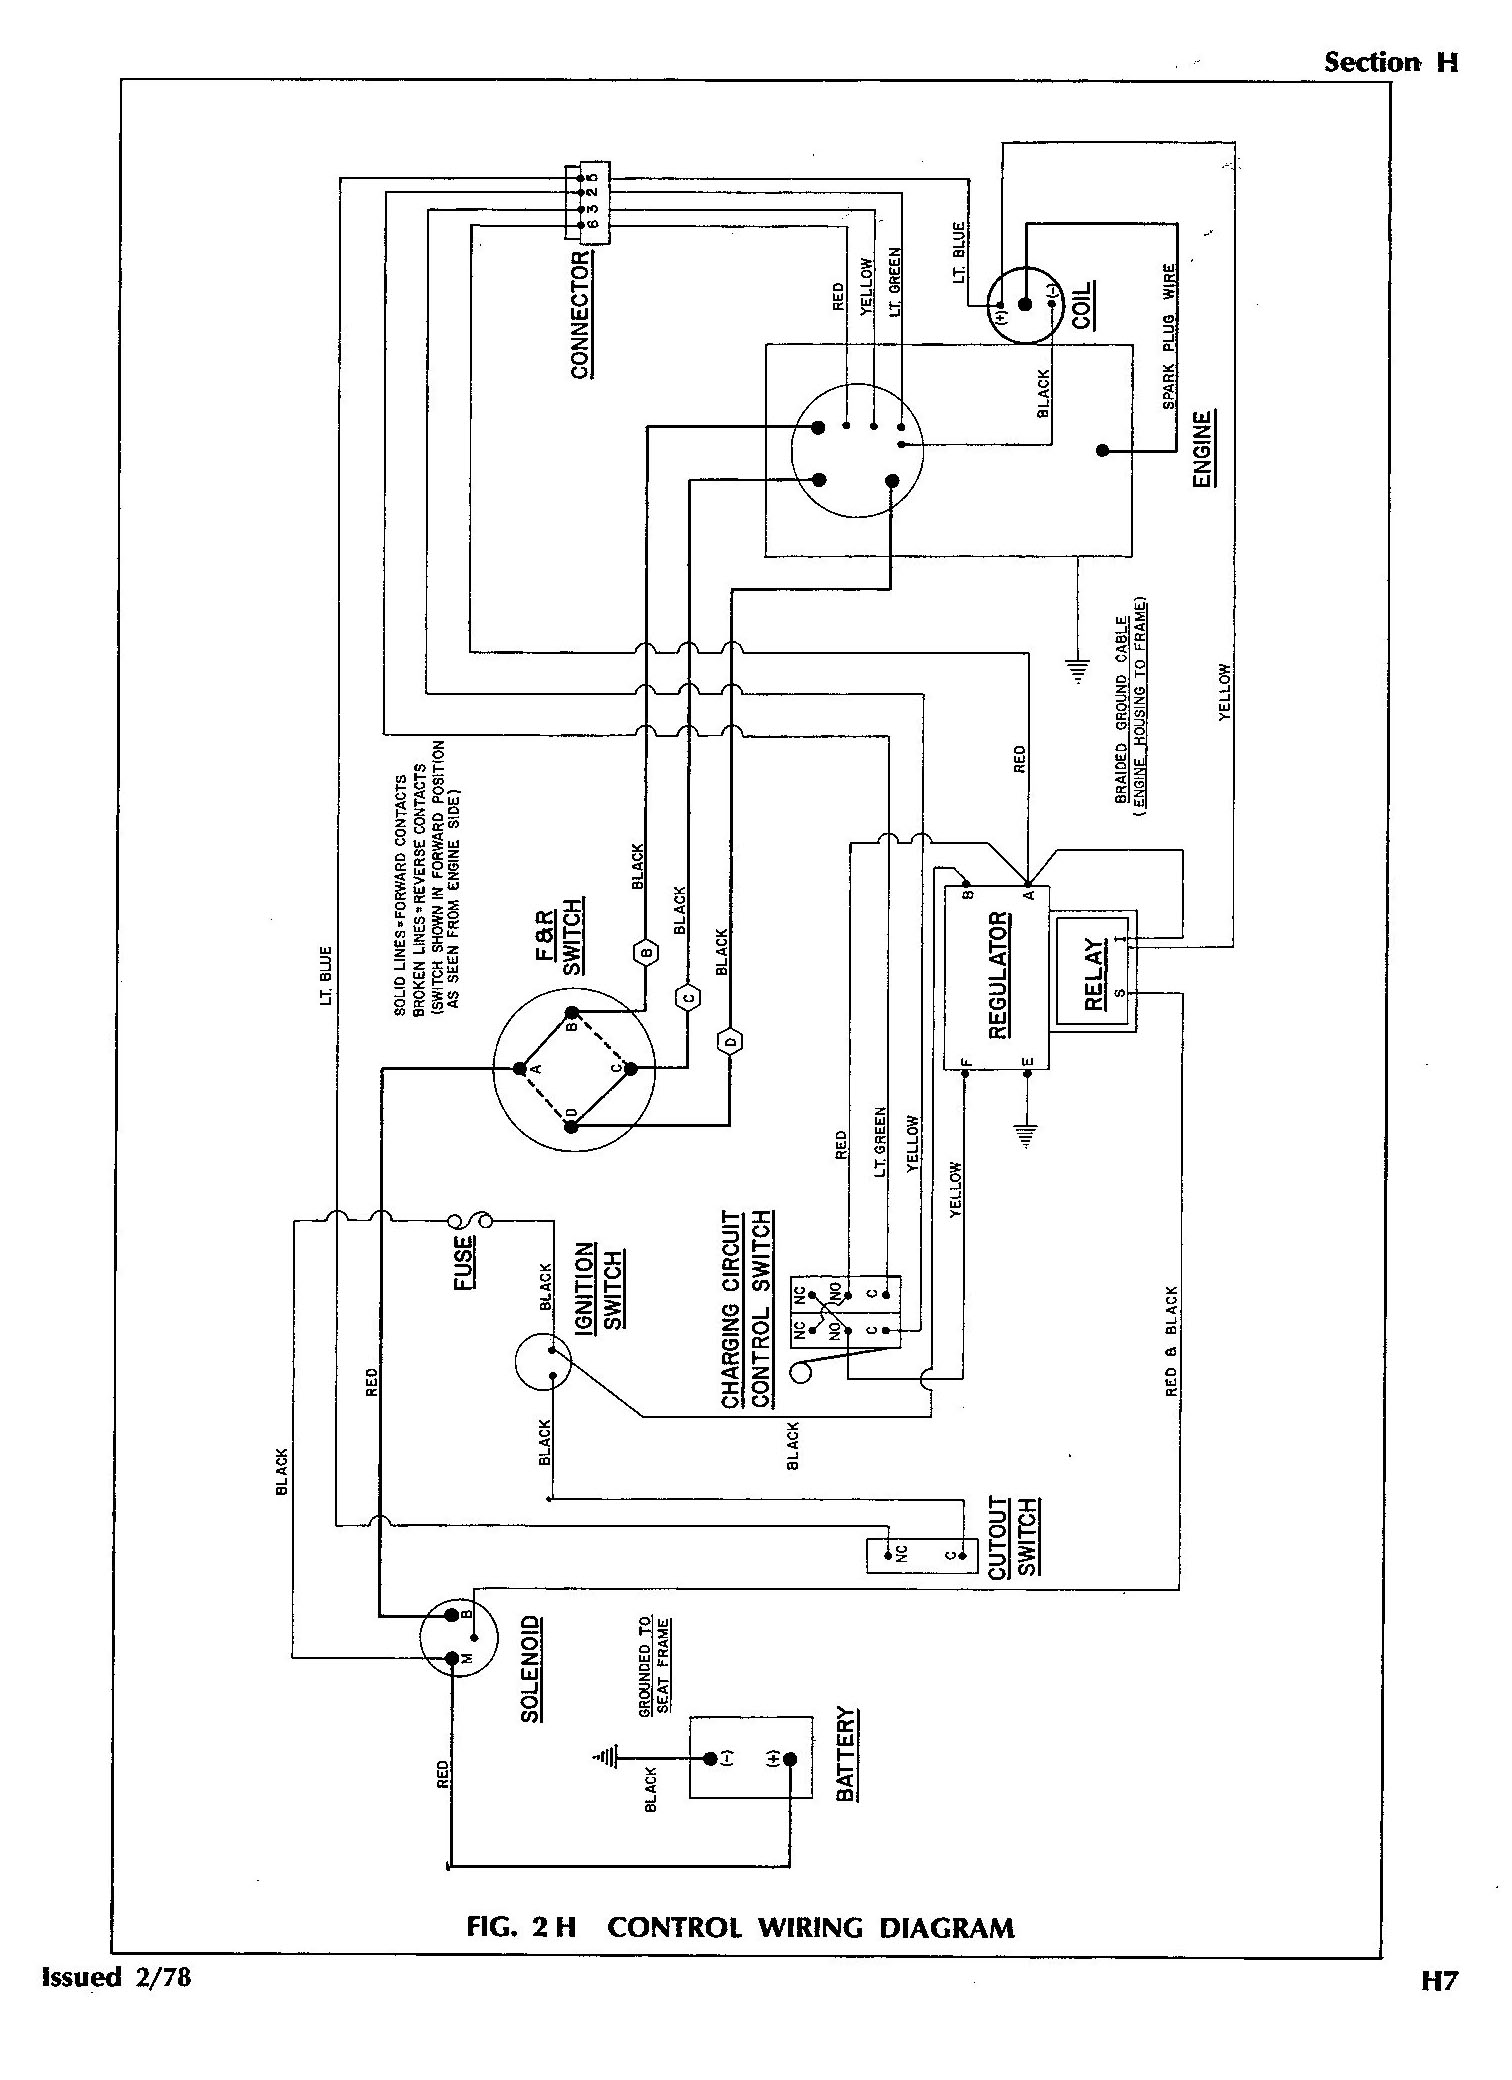 wiring diagram for 98 ezgo golf cart 36v with 81 Ezgo Marathon Golf Cart Wiring Diagram on 1998 Club Car Gas Ezgo Wiring Diagram also 81 Ezgo Marathon Golf Cart Wiring Diagram also 48 Volt Ez Go Wiring Diagram as well 2003 Ezgo Wiring Diagram as well Vintagegolfcartparts   gallery categories Melex Melex Wiring Diagrams media Melex512E cabling diagram.